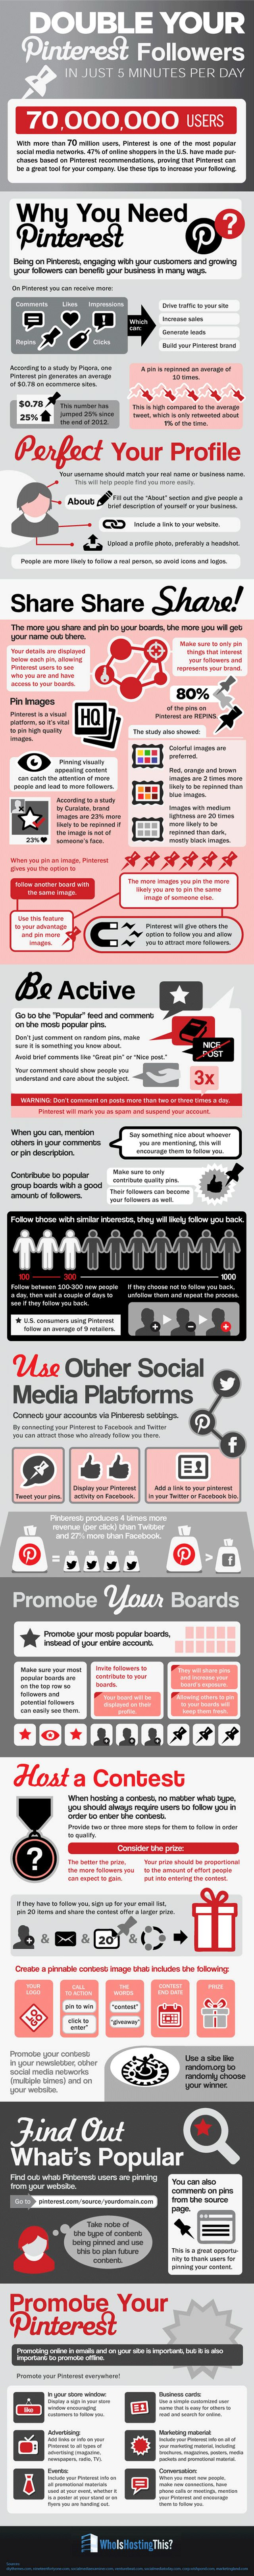 Learn how to double Pinterest followers and grow your presence on Pinterest! This infographic will show you how to gain more followers in five minutes.